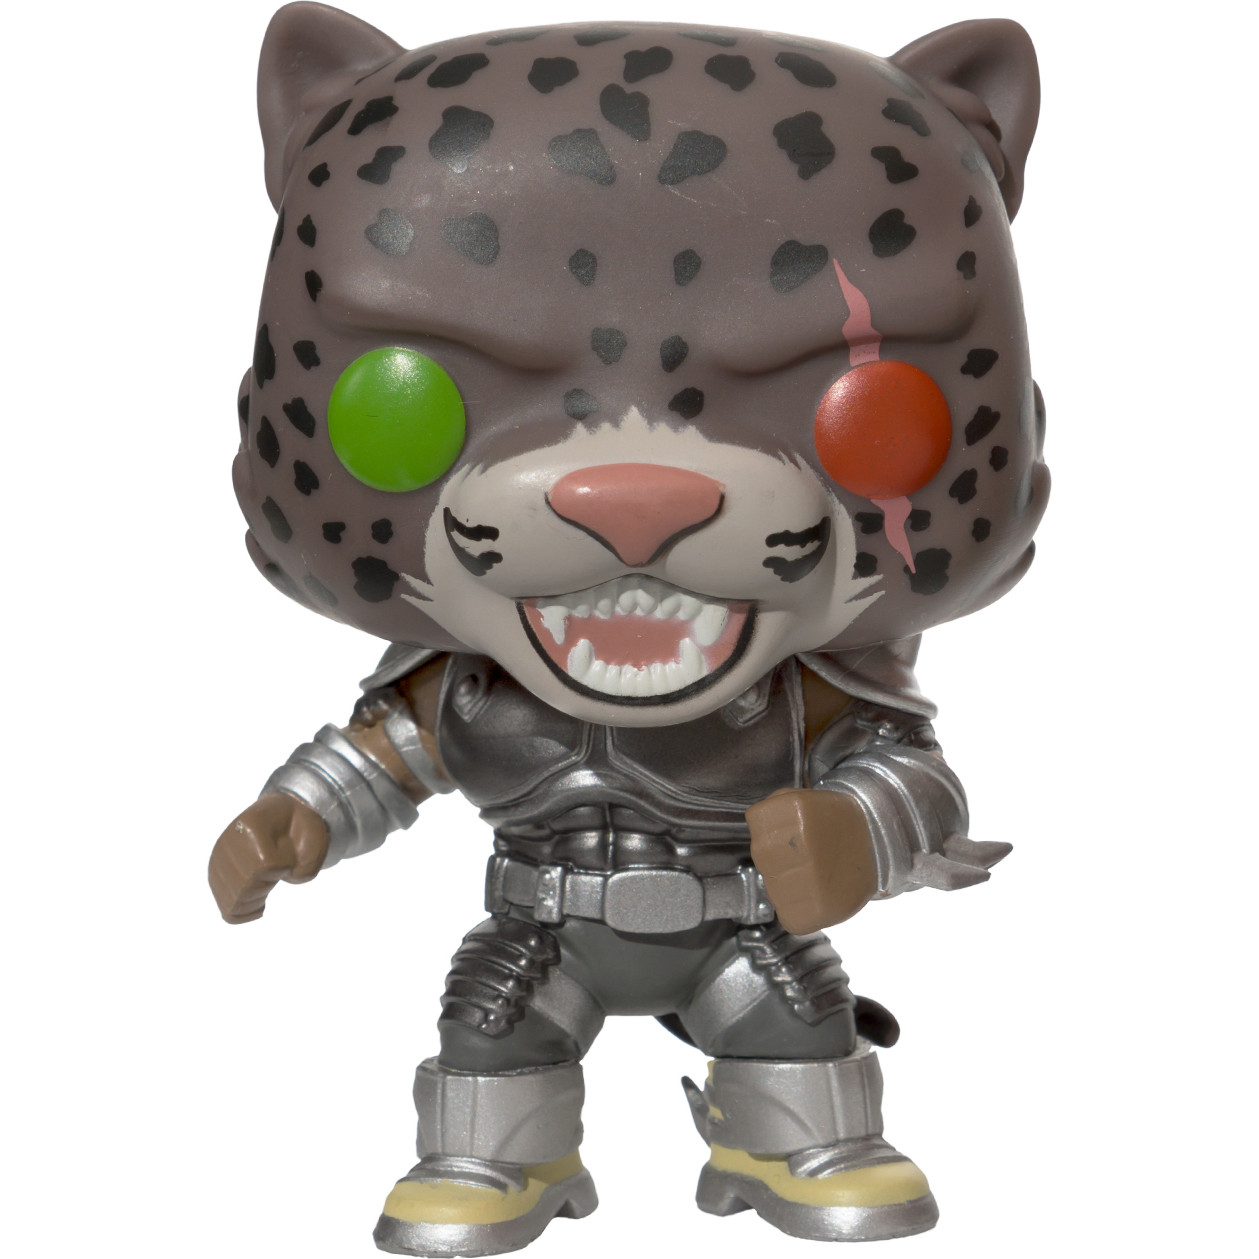 Armor King Gamestop Exclusive Funko Pop Games X Tekken Vinyl Figure Toysdiva